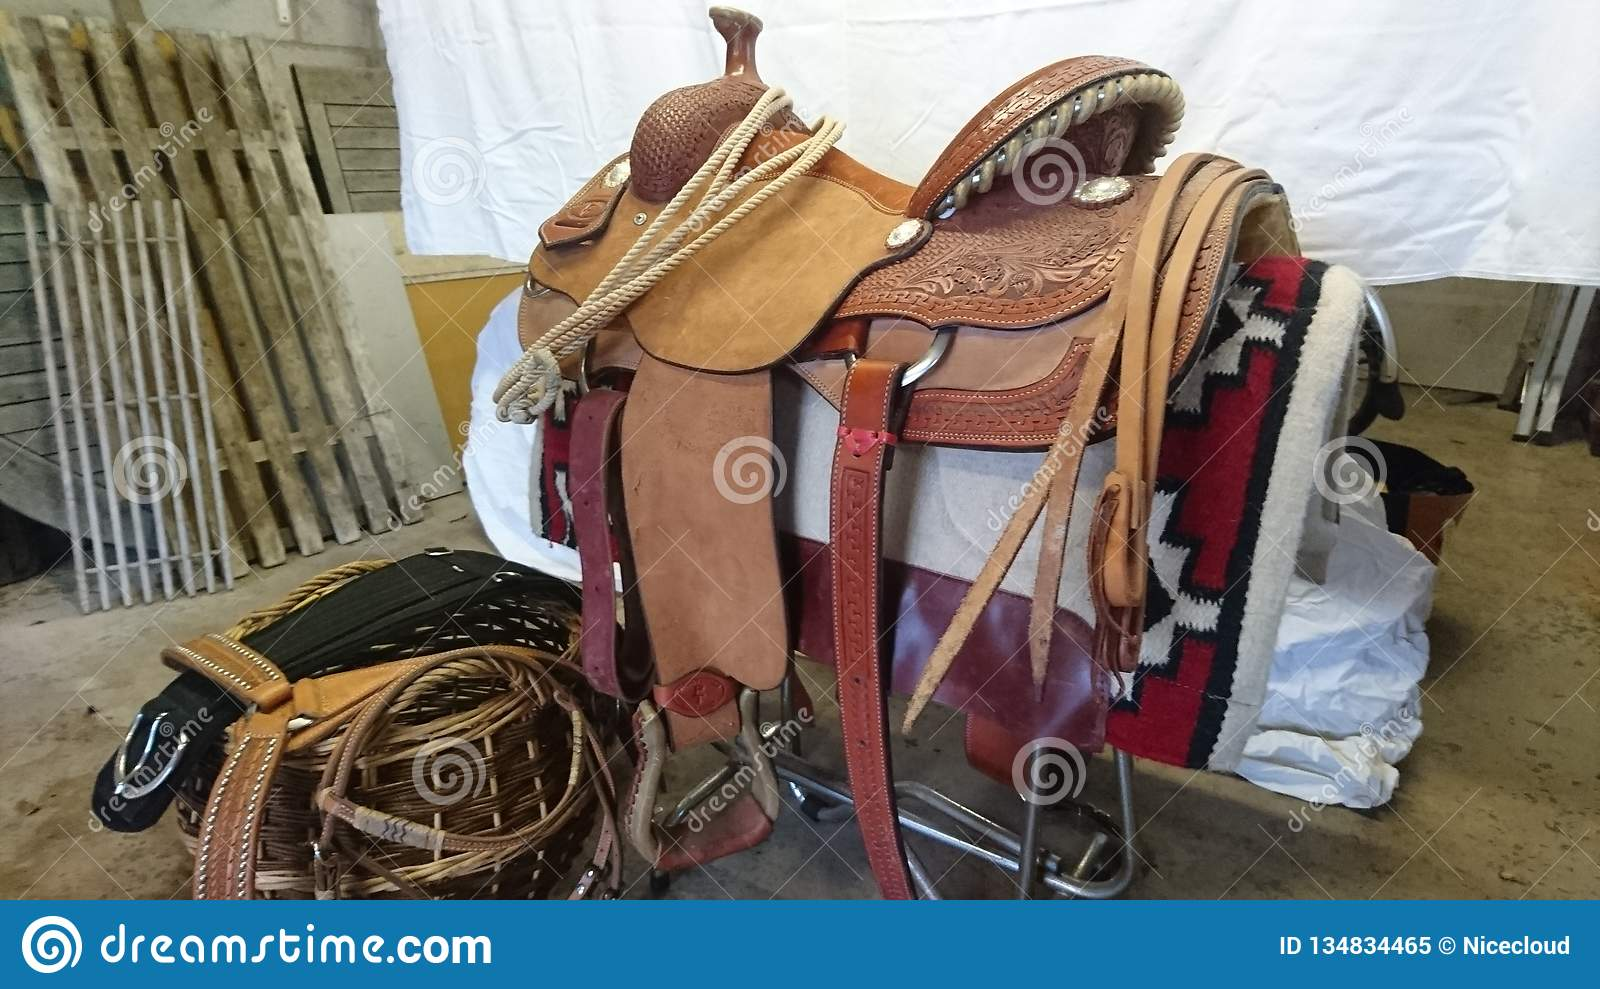 Paul Turner Quarter Horse Western Show Saddle Editorial